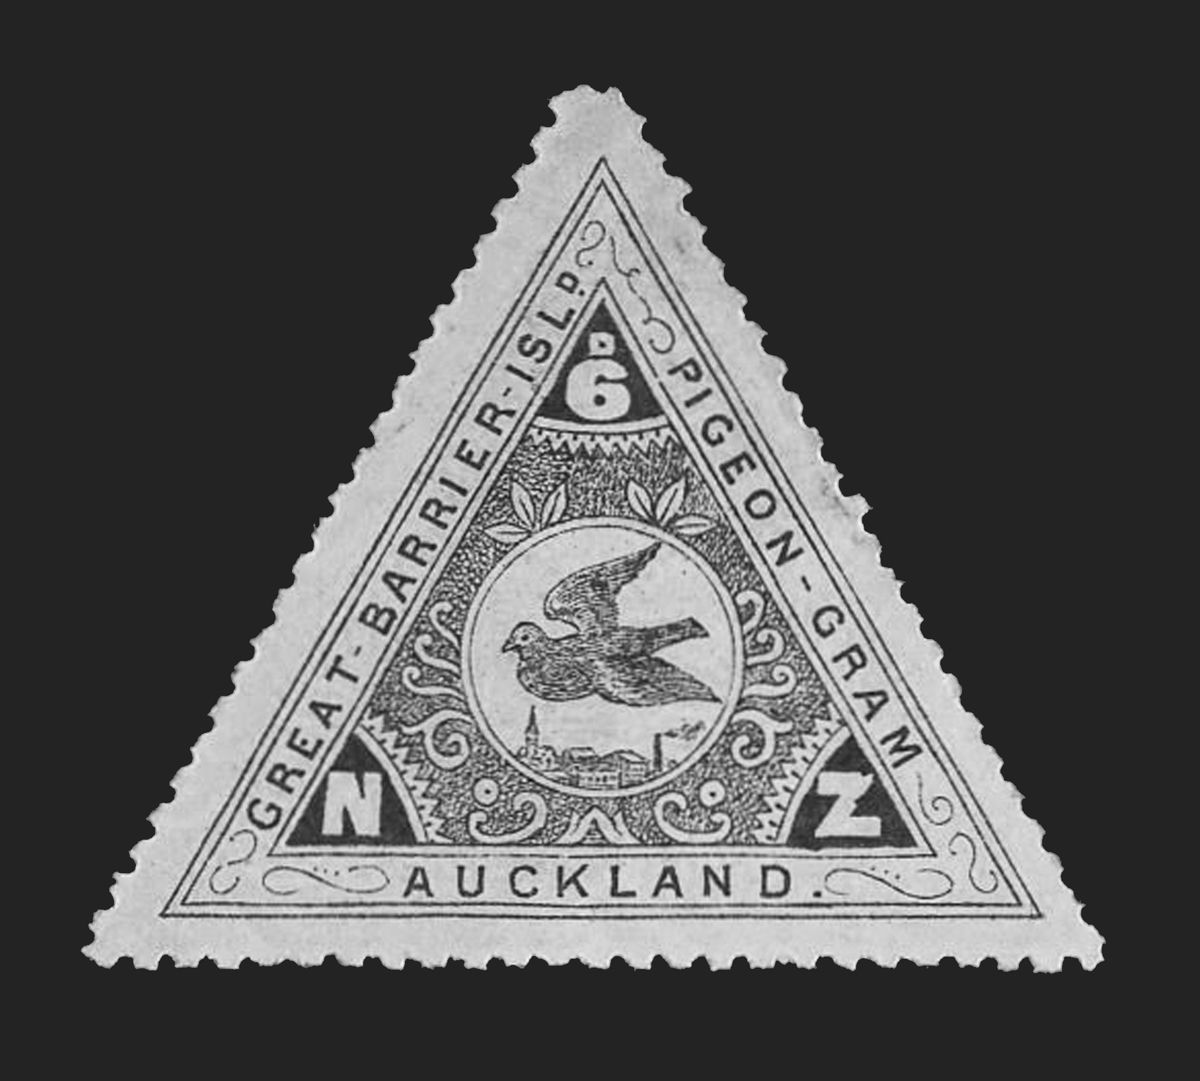 Stamp for early Pigeon-Gram service on Great Barrier Island (New Zealand).